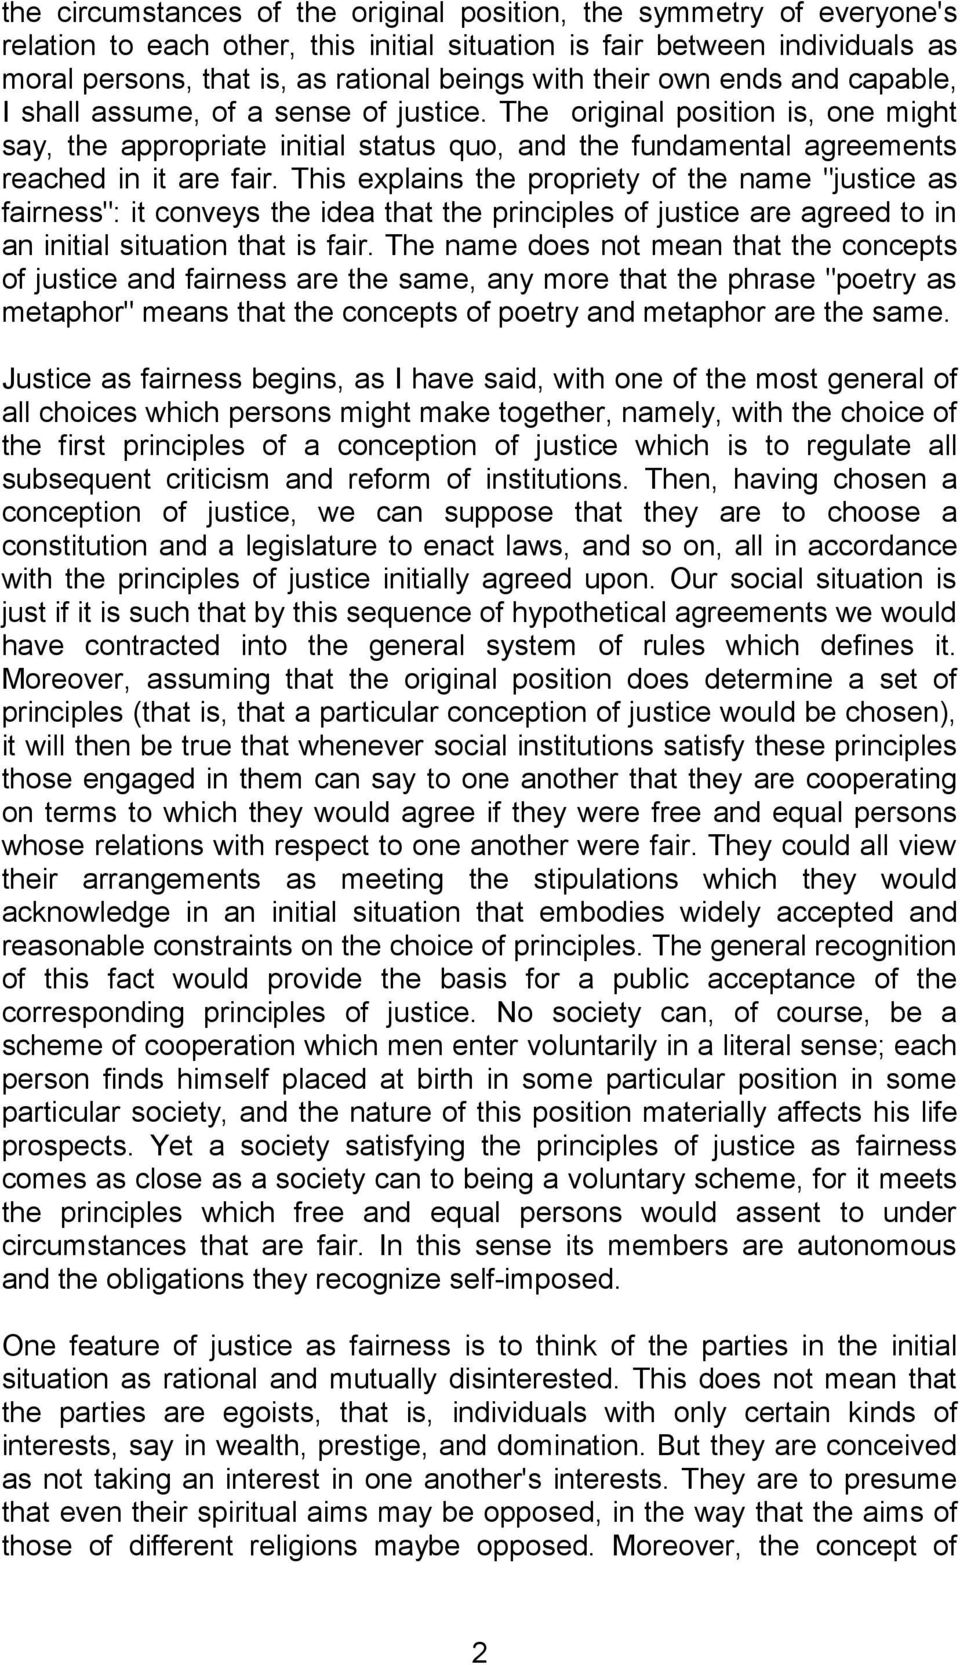 "This explains the propriety of the name ""justice as fairness"": it conveys the idea that the principles of justice are agreed to in an initial situation that is fair."